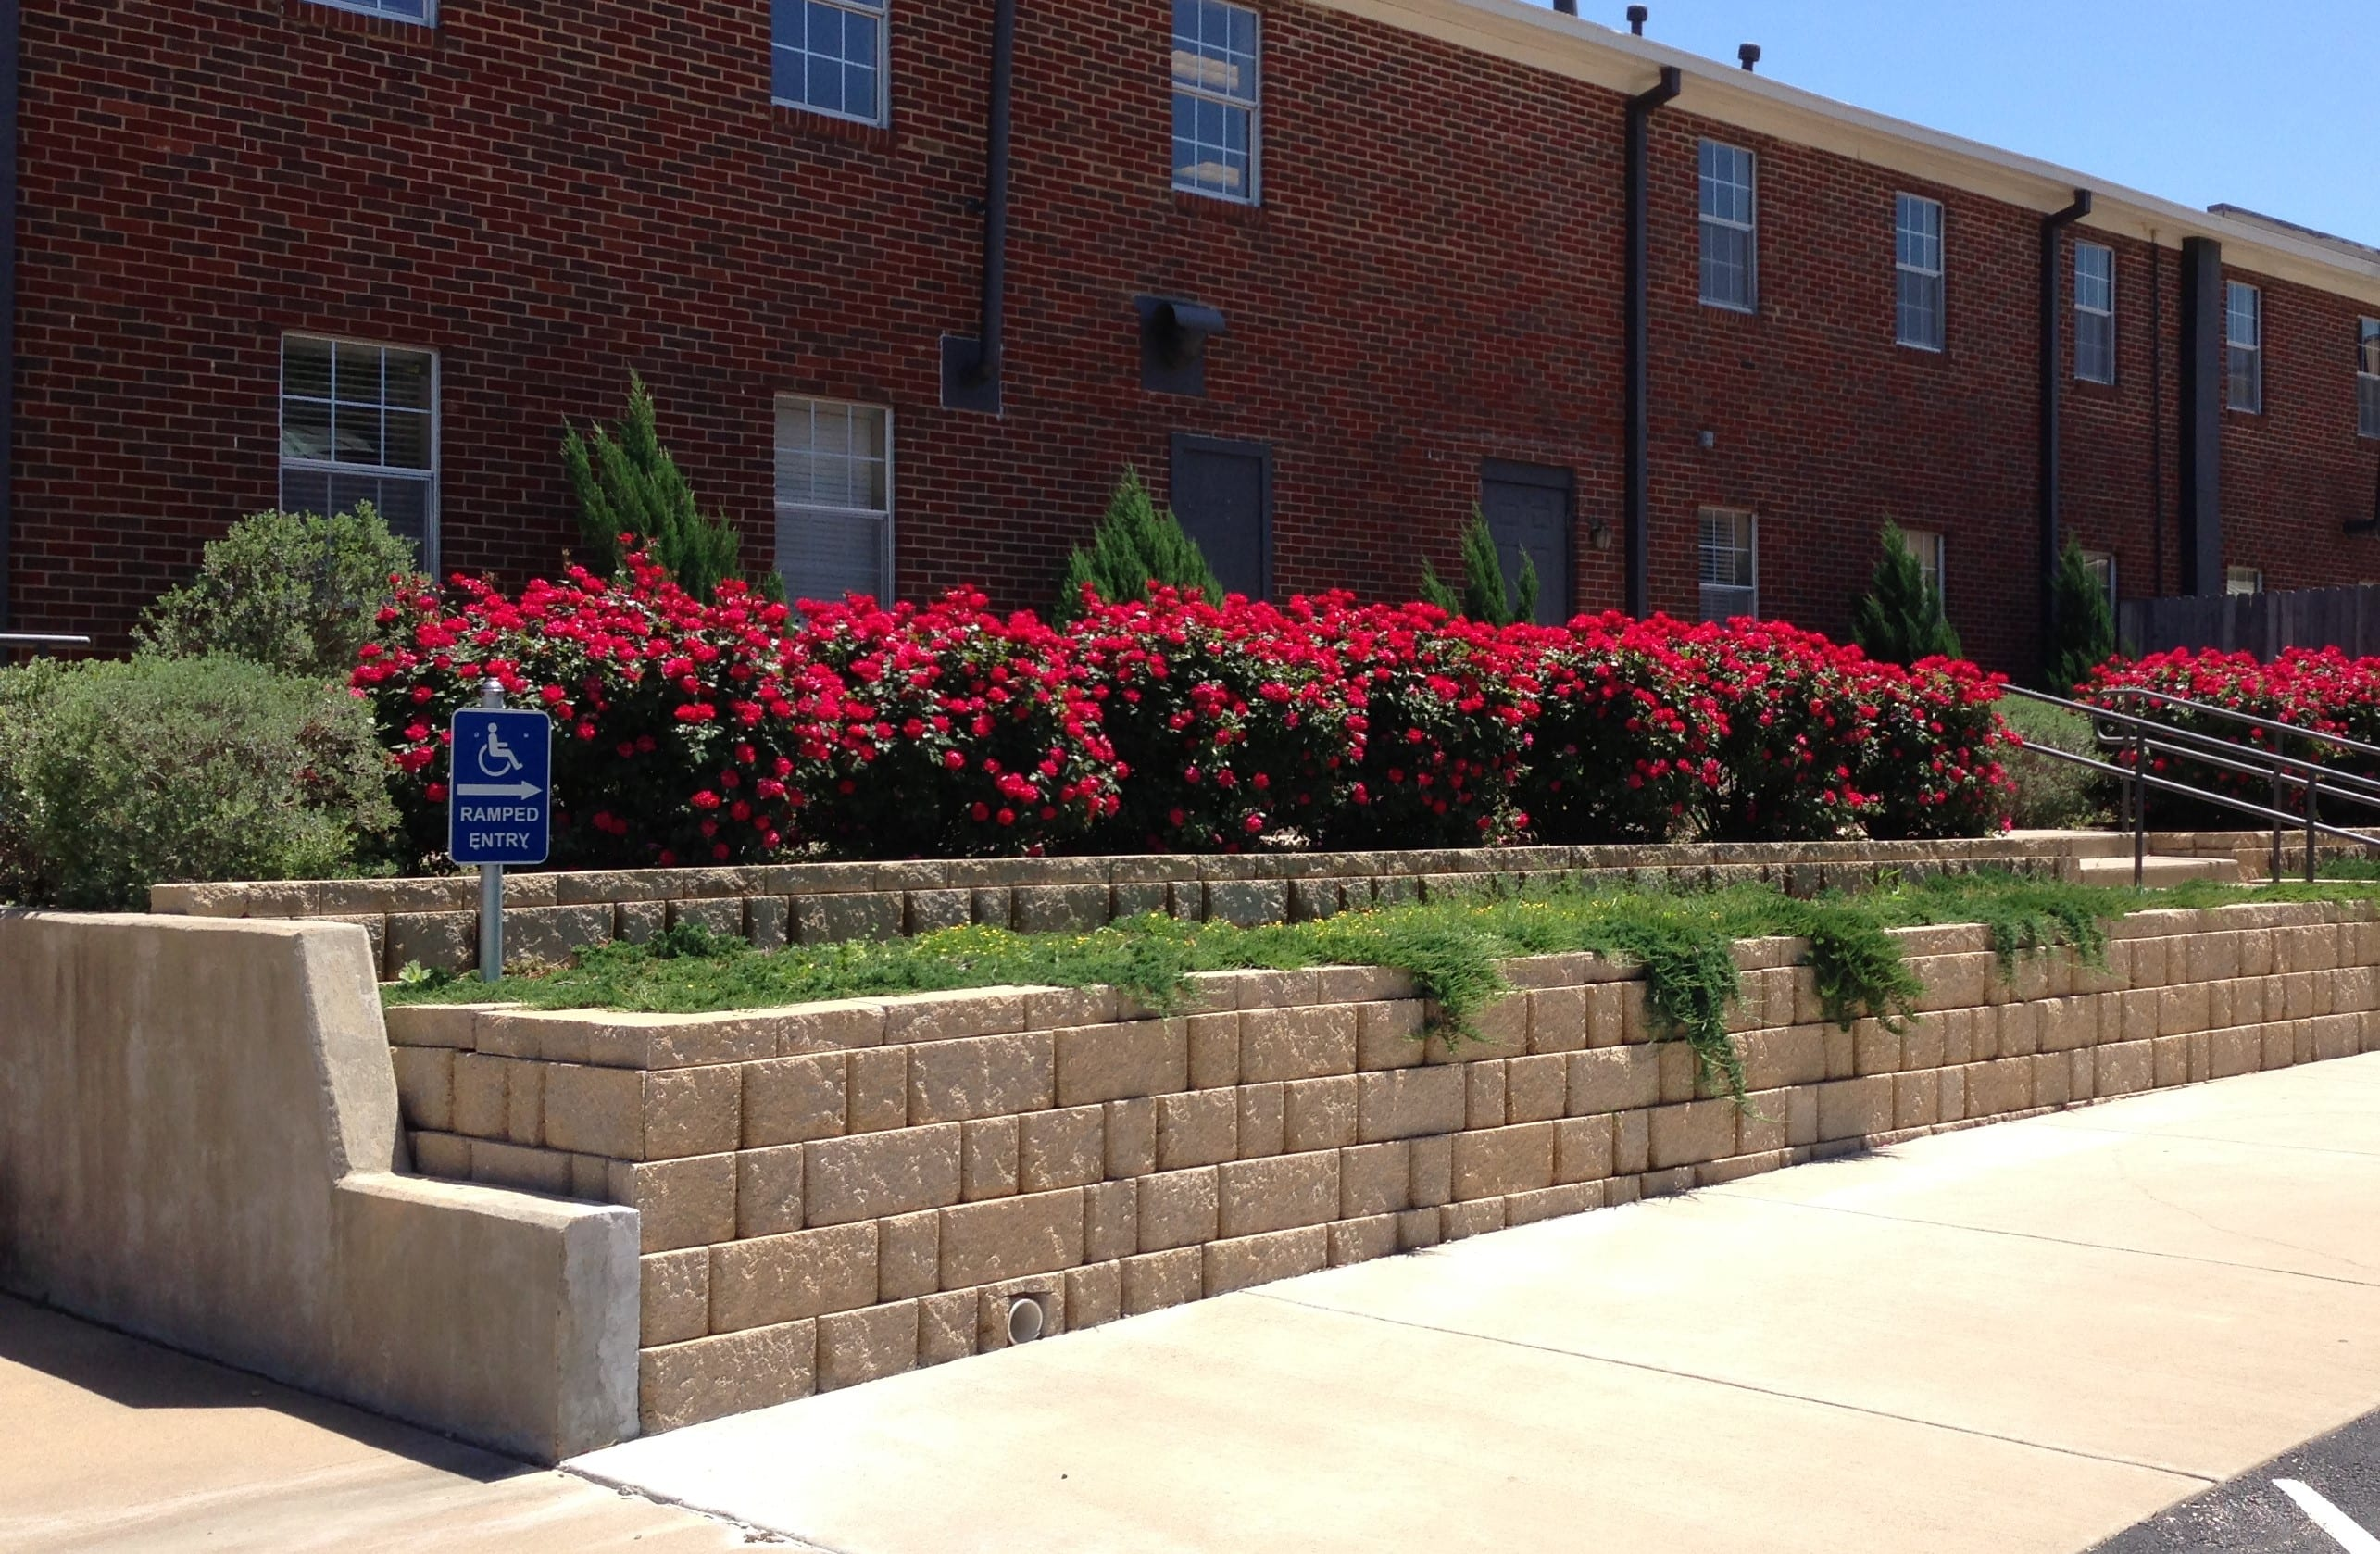 Commercial Landscaping in Corsicana, Texas